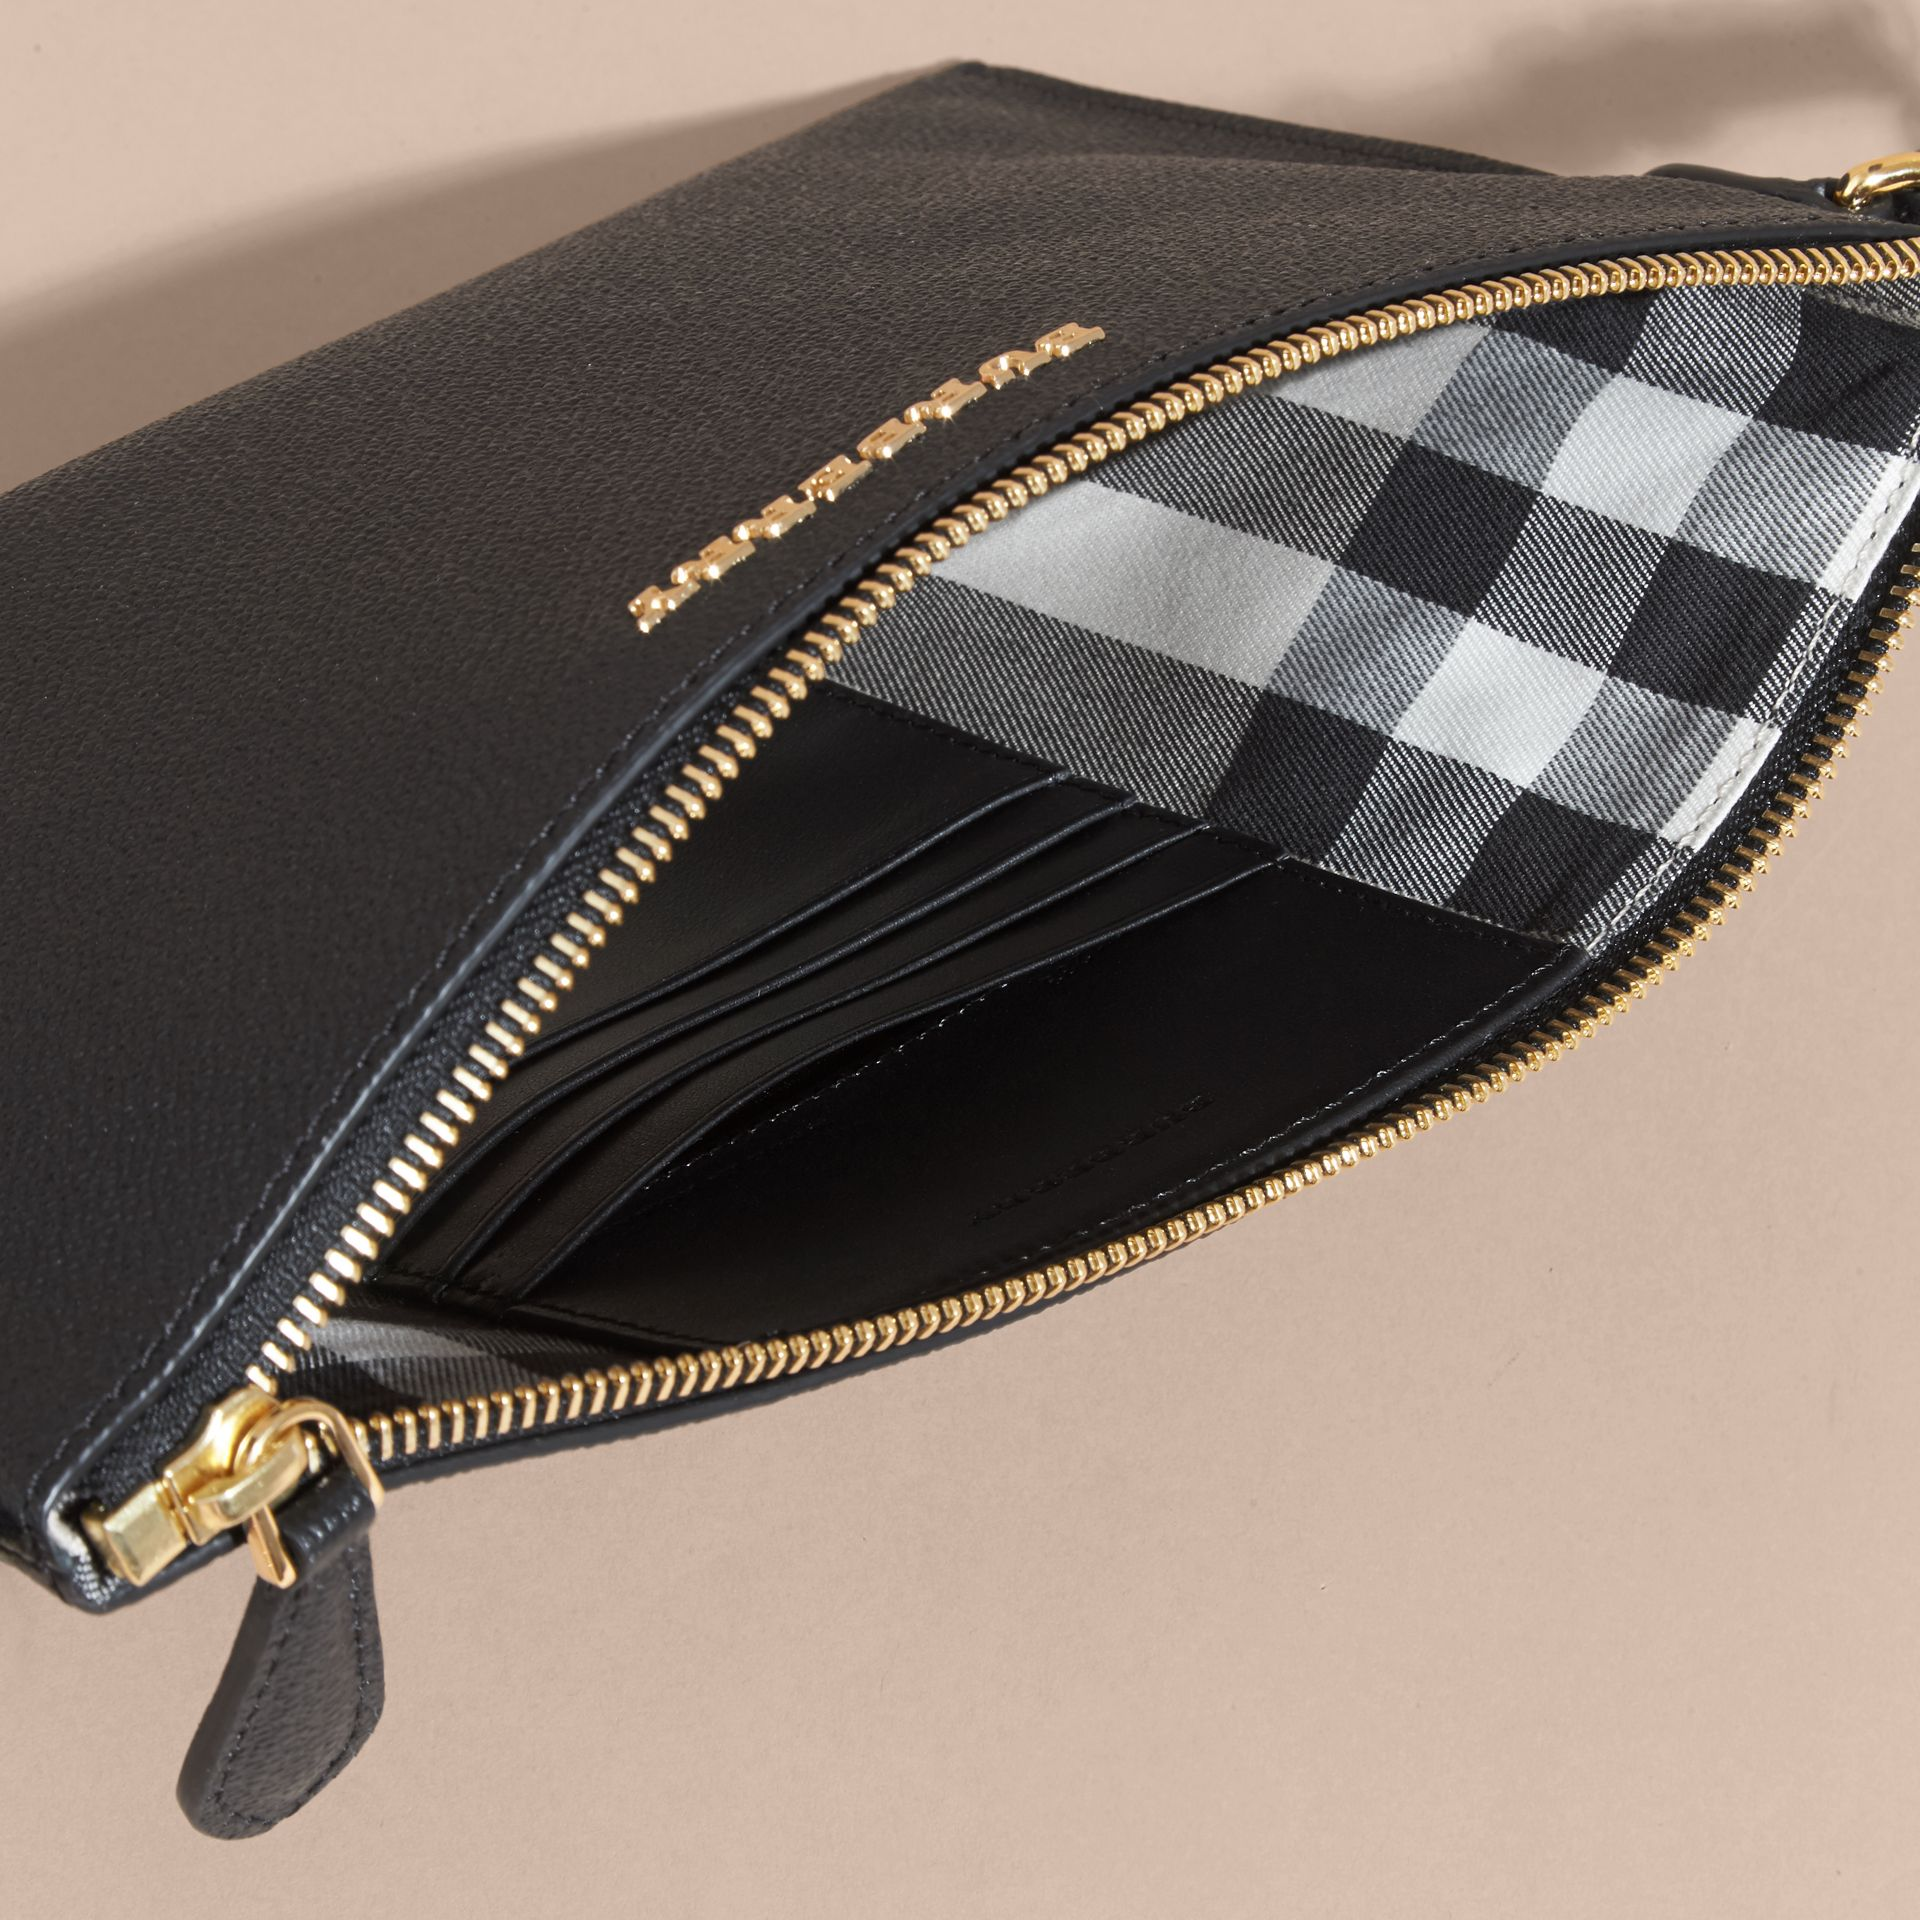 Leather Clutch Bag with Check Lining in Black - Women | Burberry Hong Kong - gallery image 6